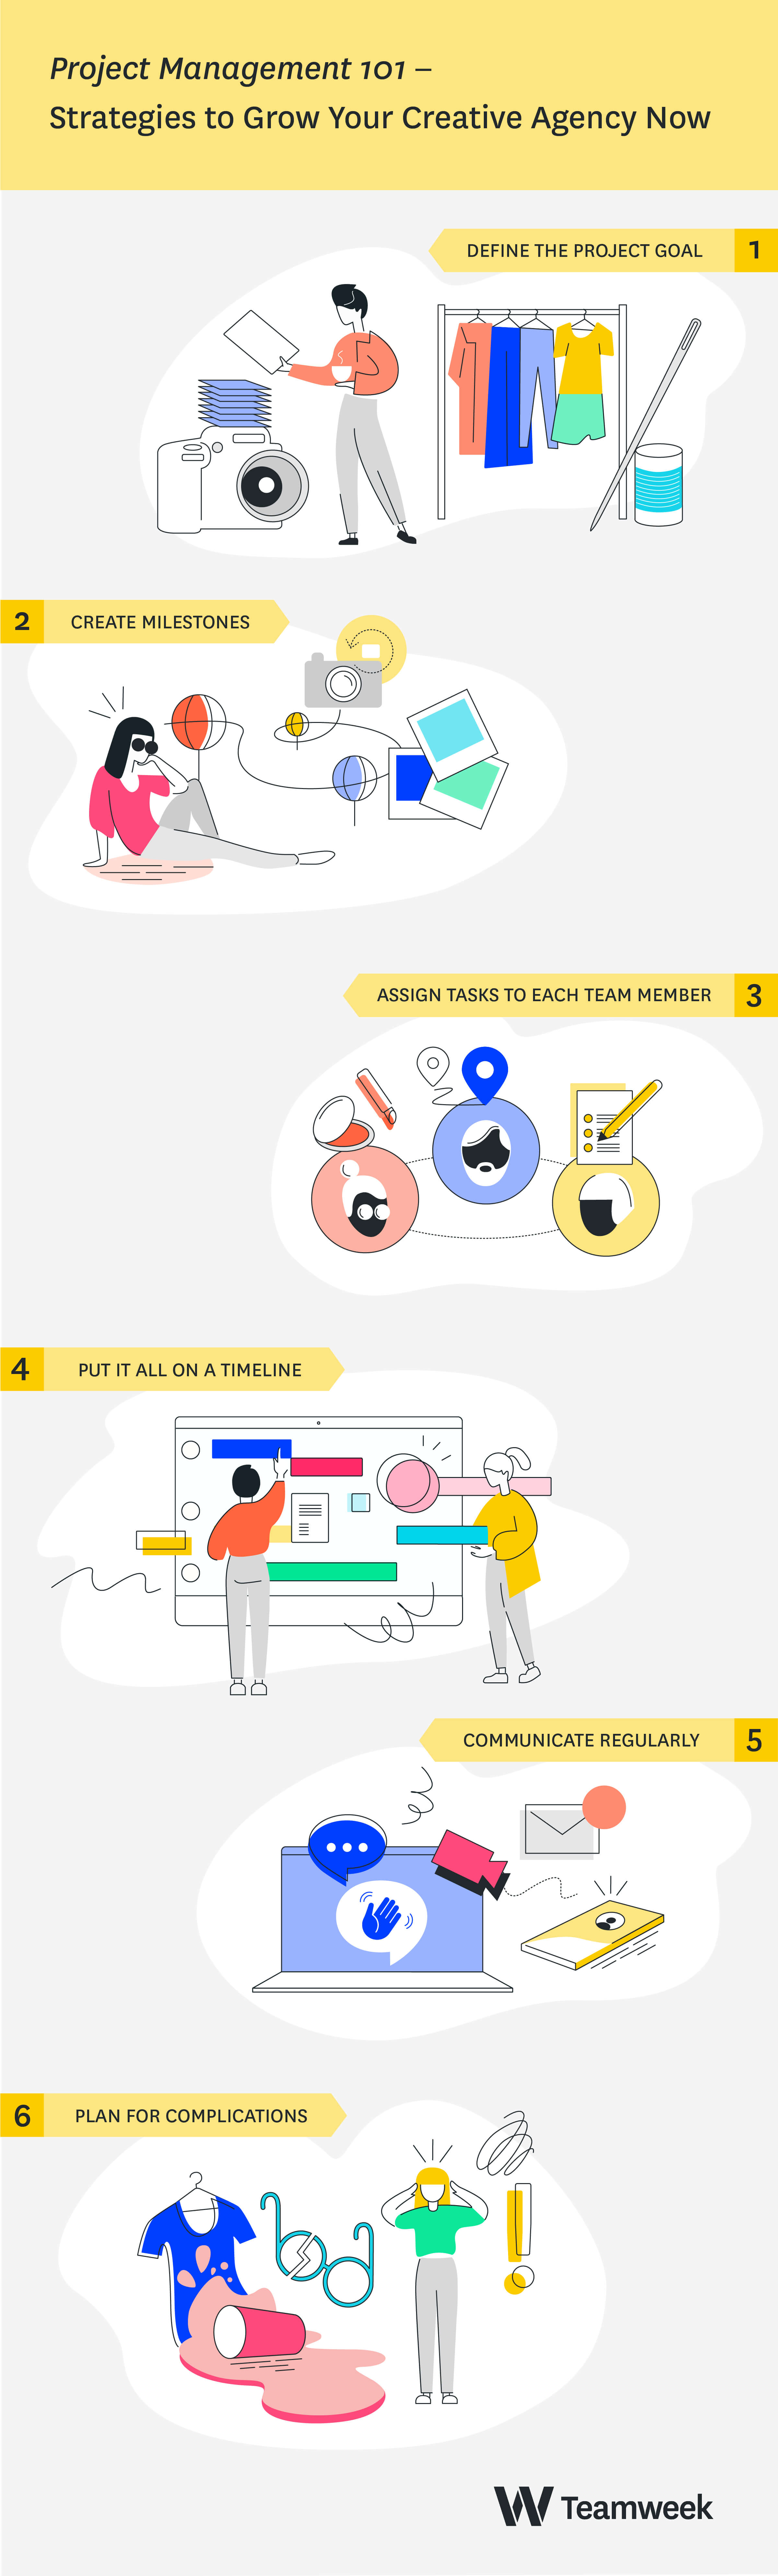 1811-TW-BLOG-INFOGRAPHIC-CREATIVE-GROWTH_FULL